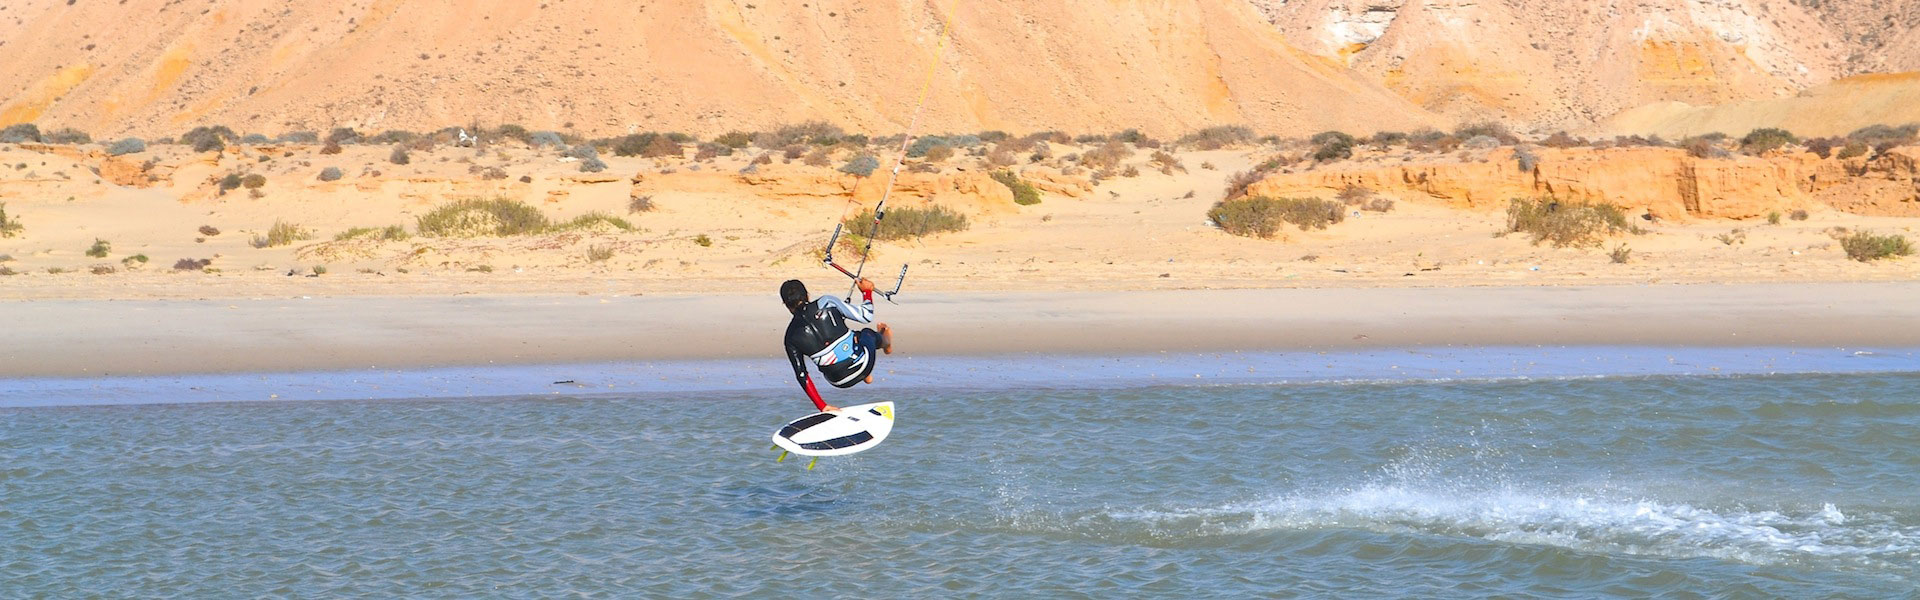 Heliophora Dakhla is a perfect place to start kitesurfing. Experience the genuine attitude in dakhla on a nice spot with a great spirit